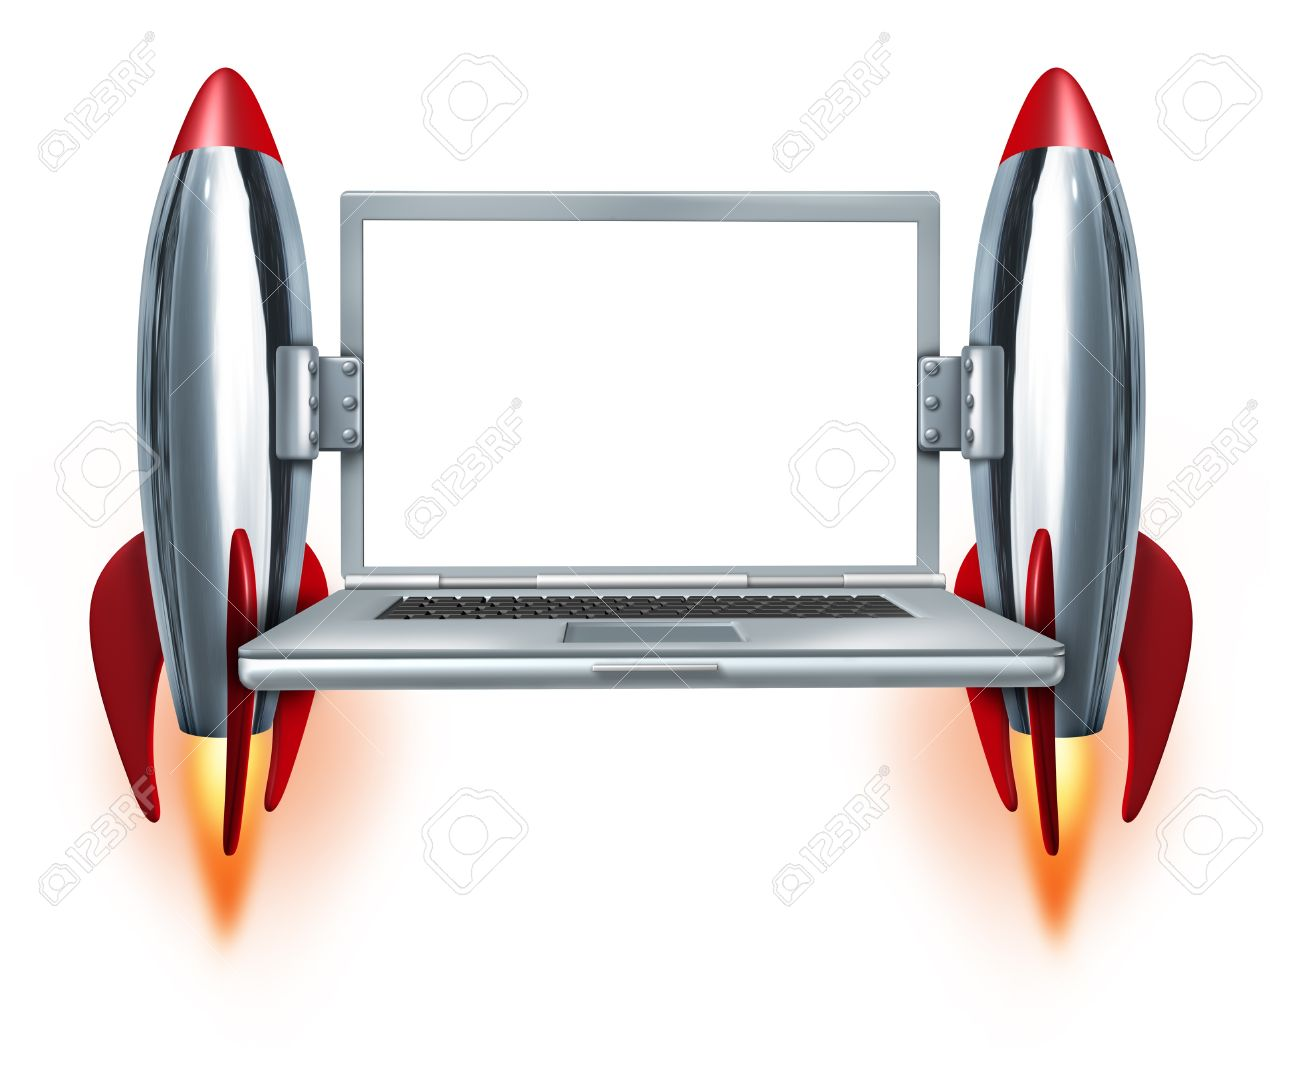 High speed internet technology symbol with a blank laptop and two rocket boosters blasting off as a concept of fast mobility computing and quick technical service on a white background Stock Photo - 13650239